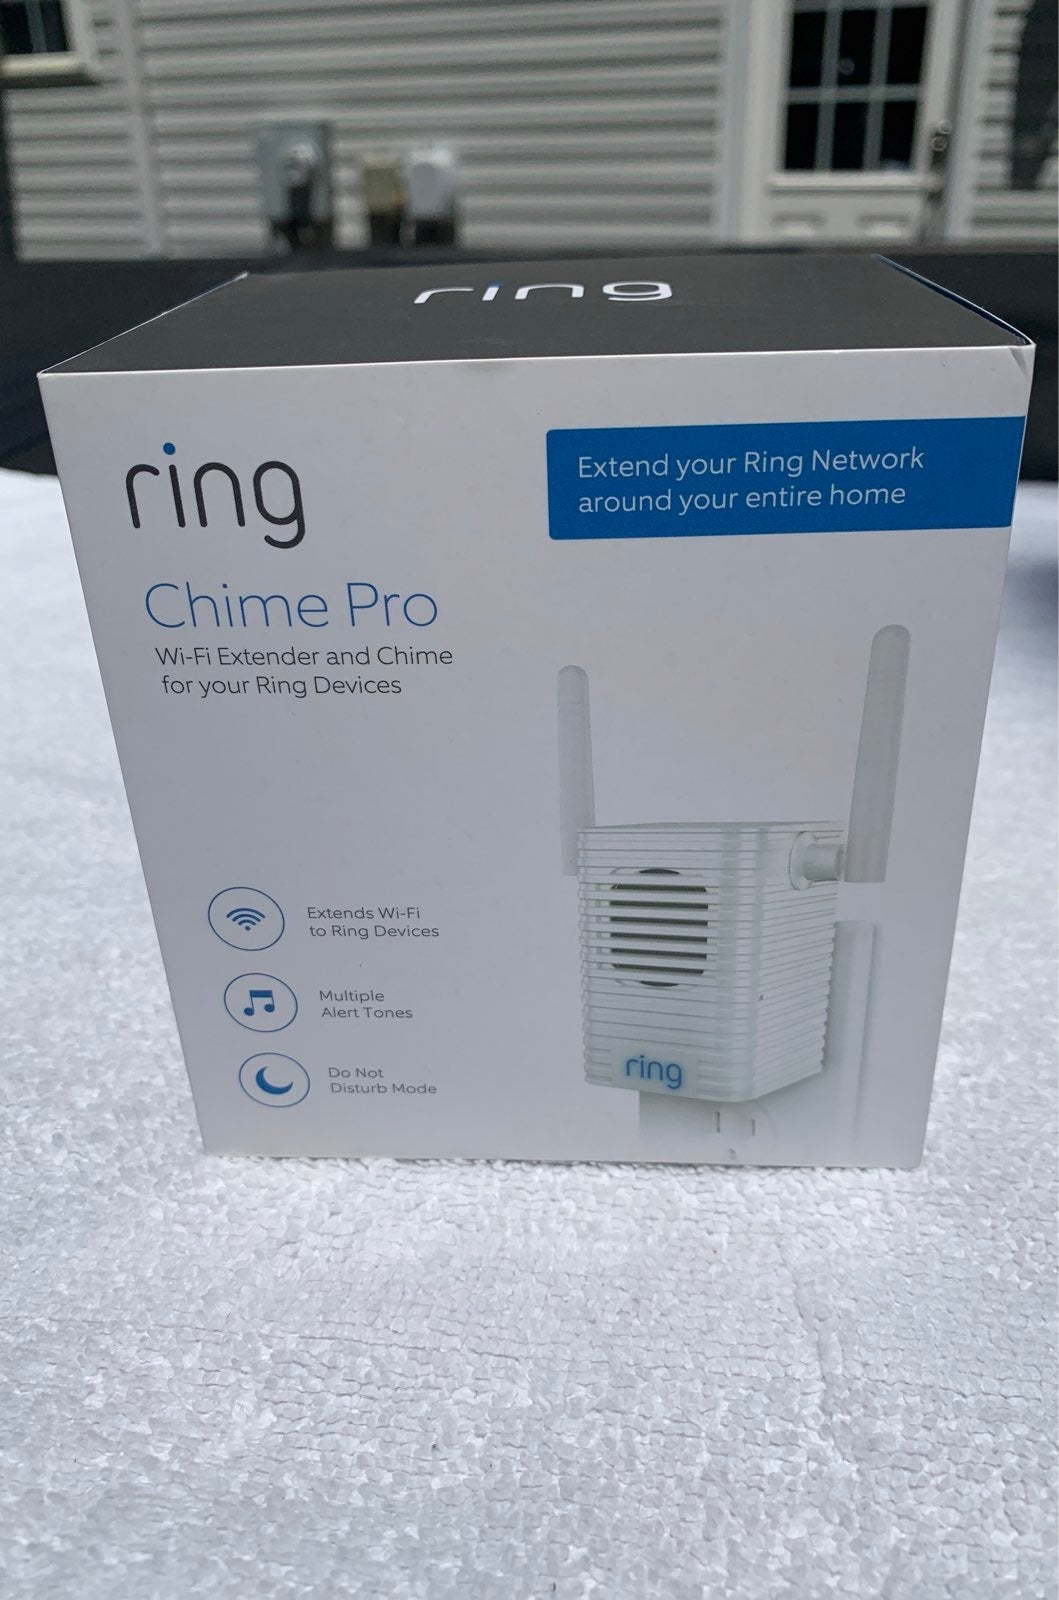 Ring Chime Pro Wi-Fi Extender